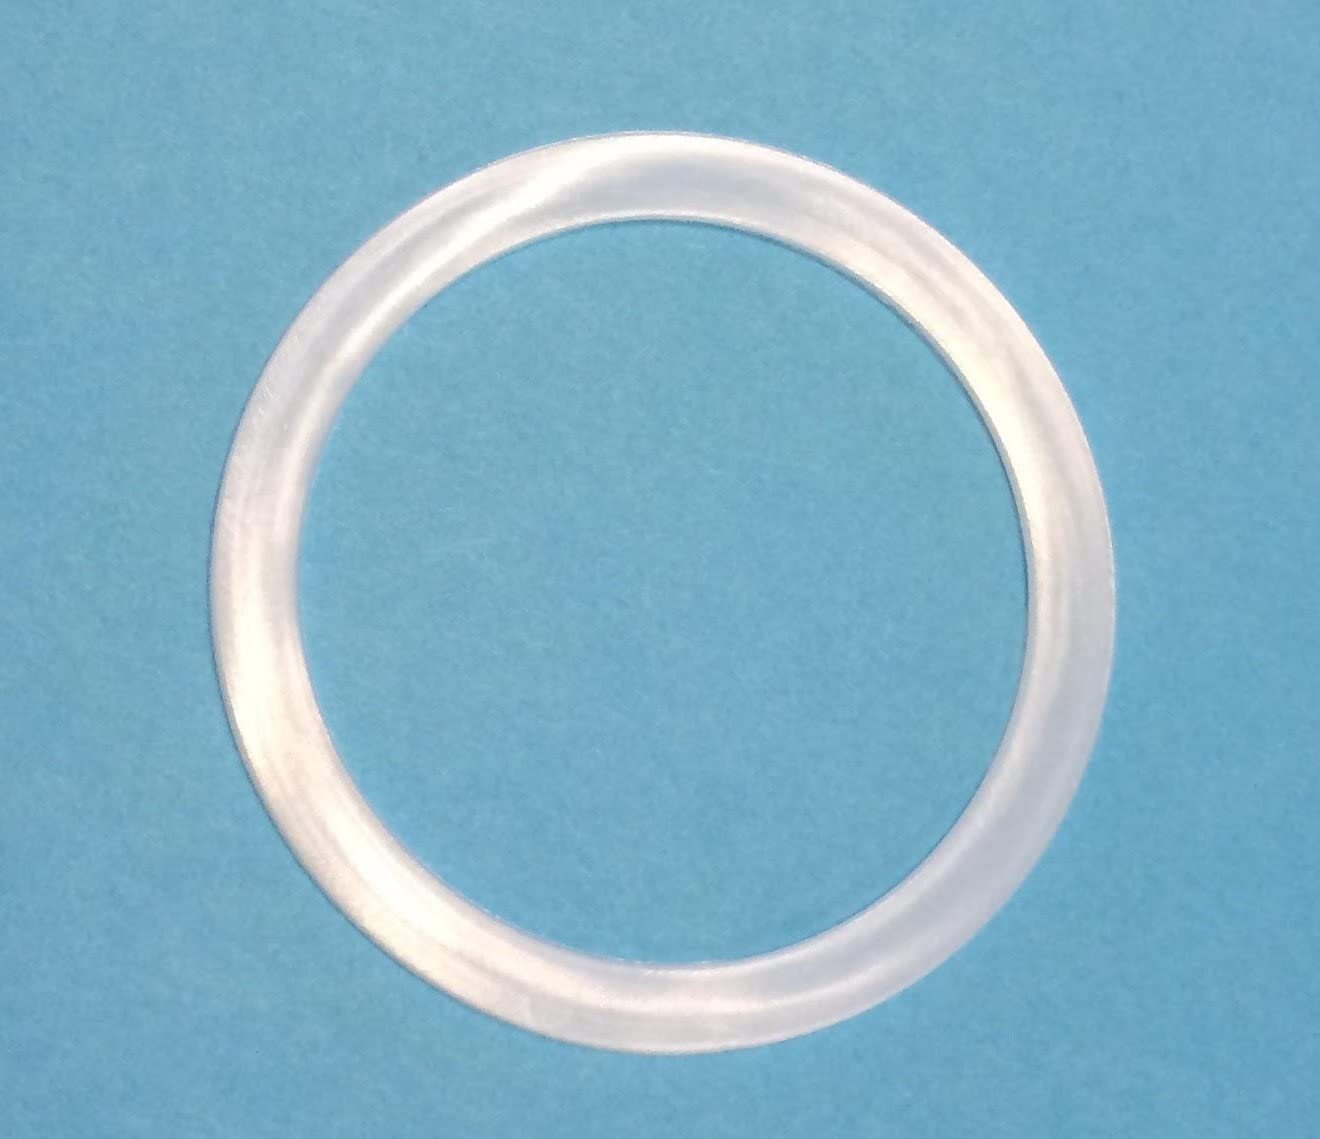 24 Pack WIDE MOUTH Mason Jar Cap Silicone Gasket Lid Seals High Quality